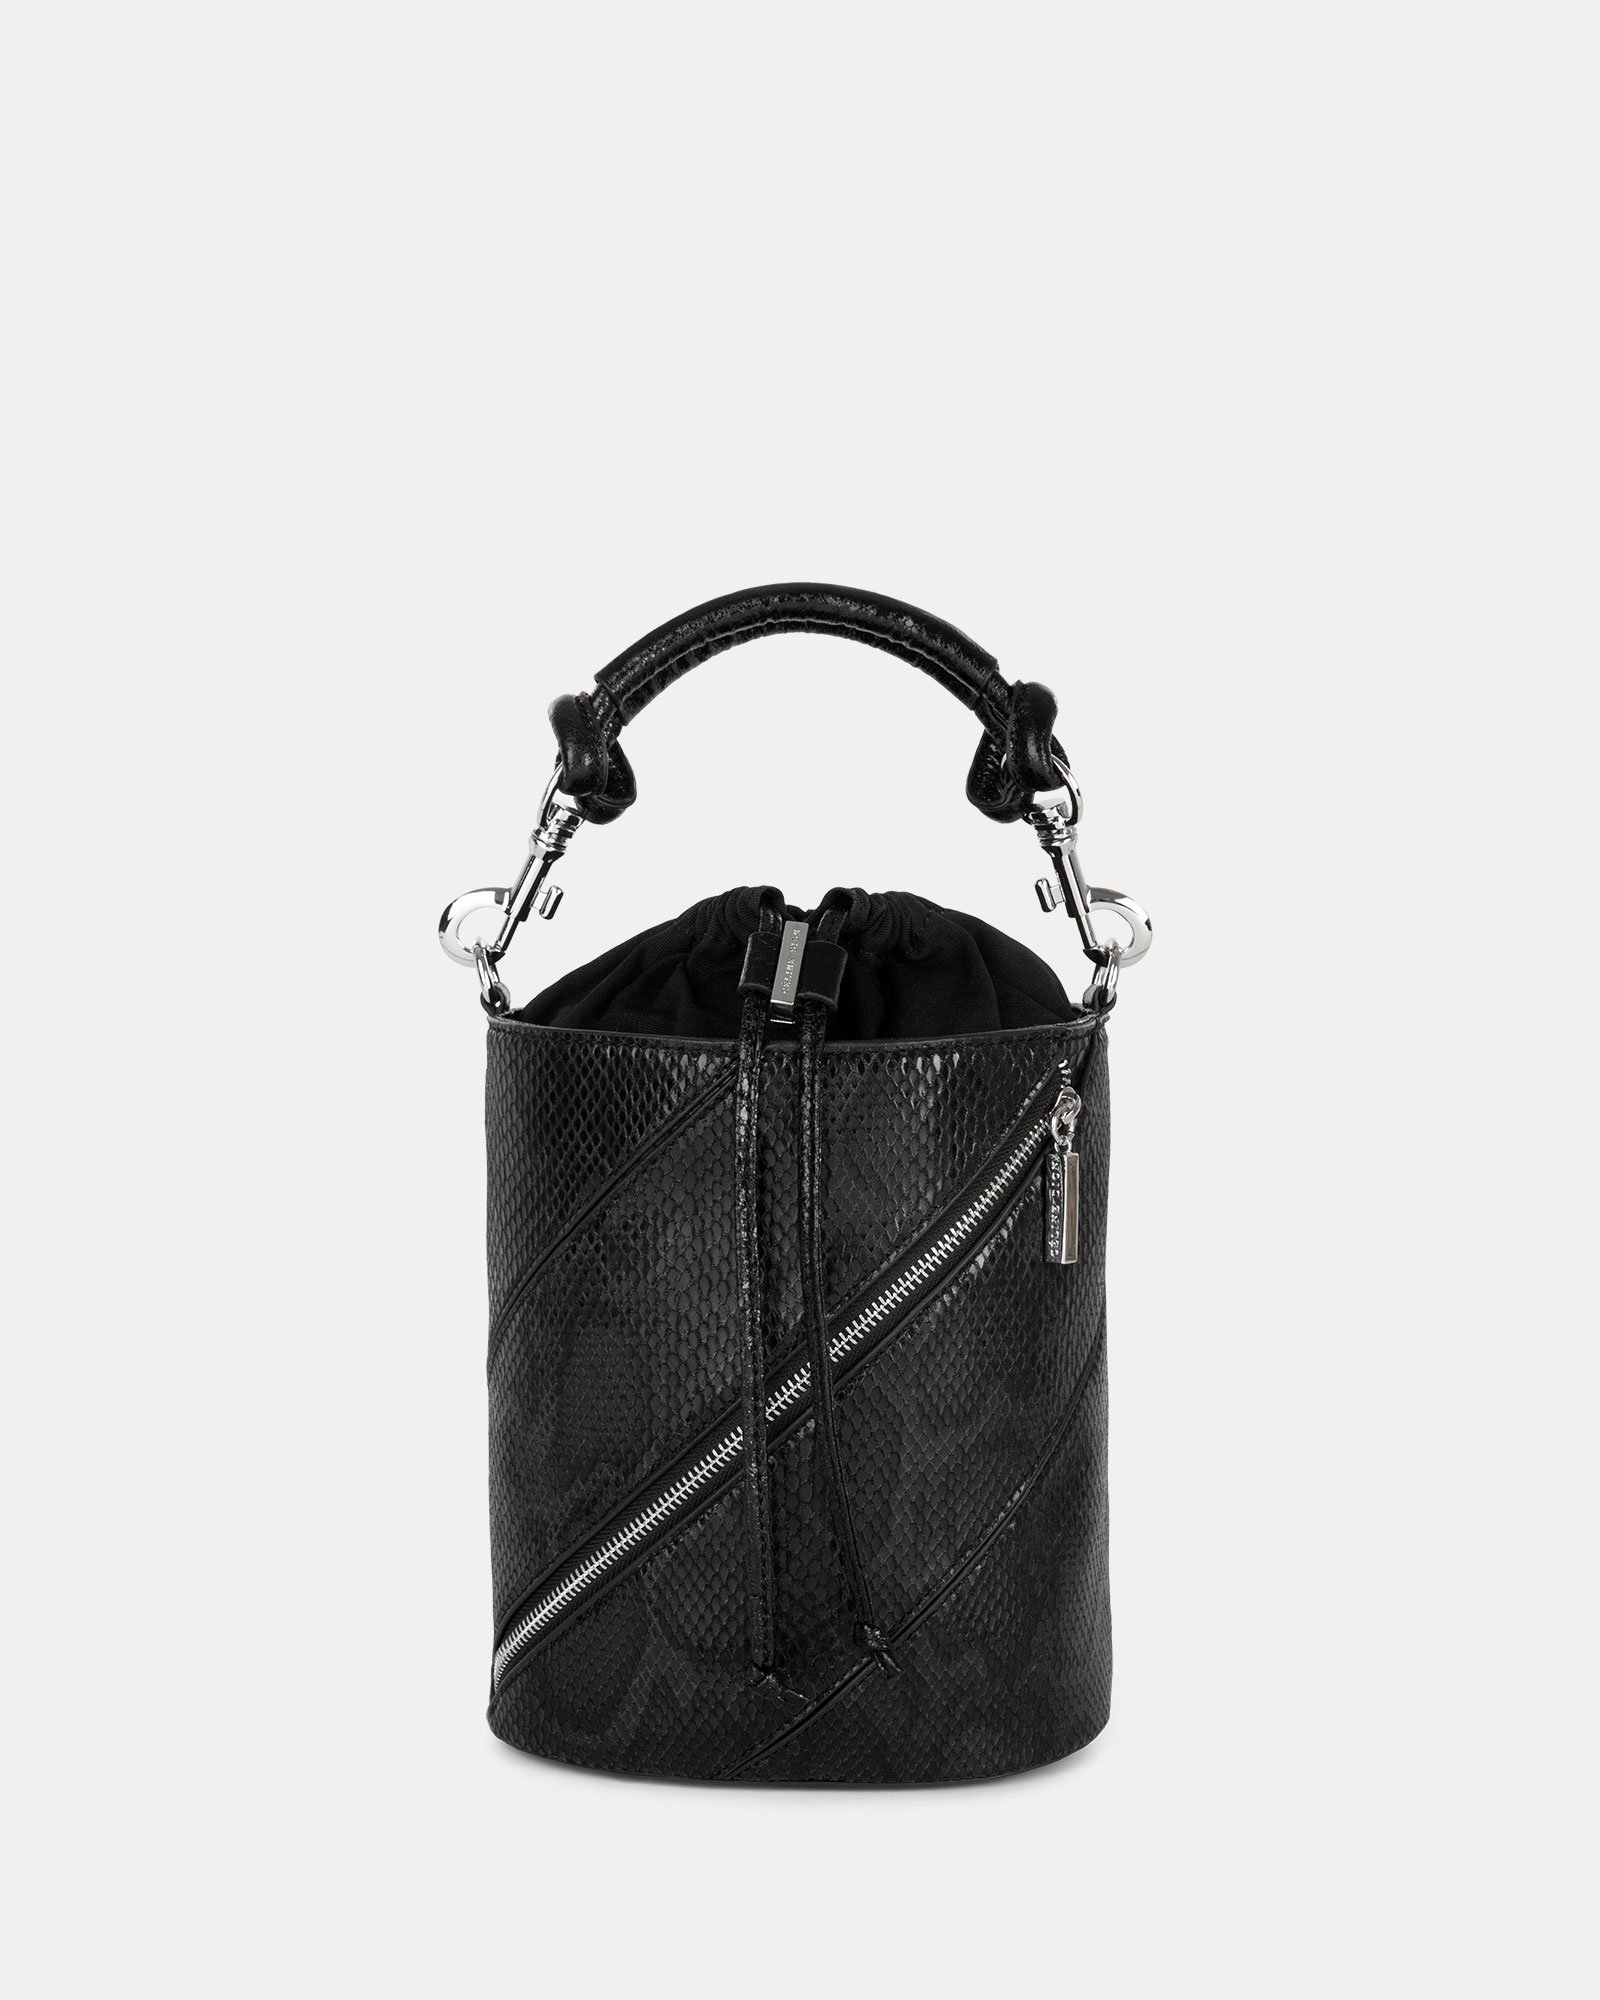 Vivo - Hobo bag Leather-like & Canvas with Adjustable and detachable crossbody strap - Black - Céline Dion - Zoom